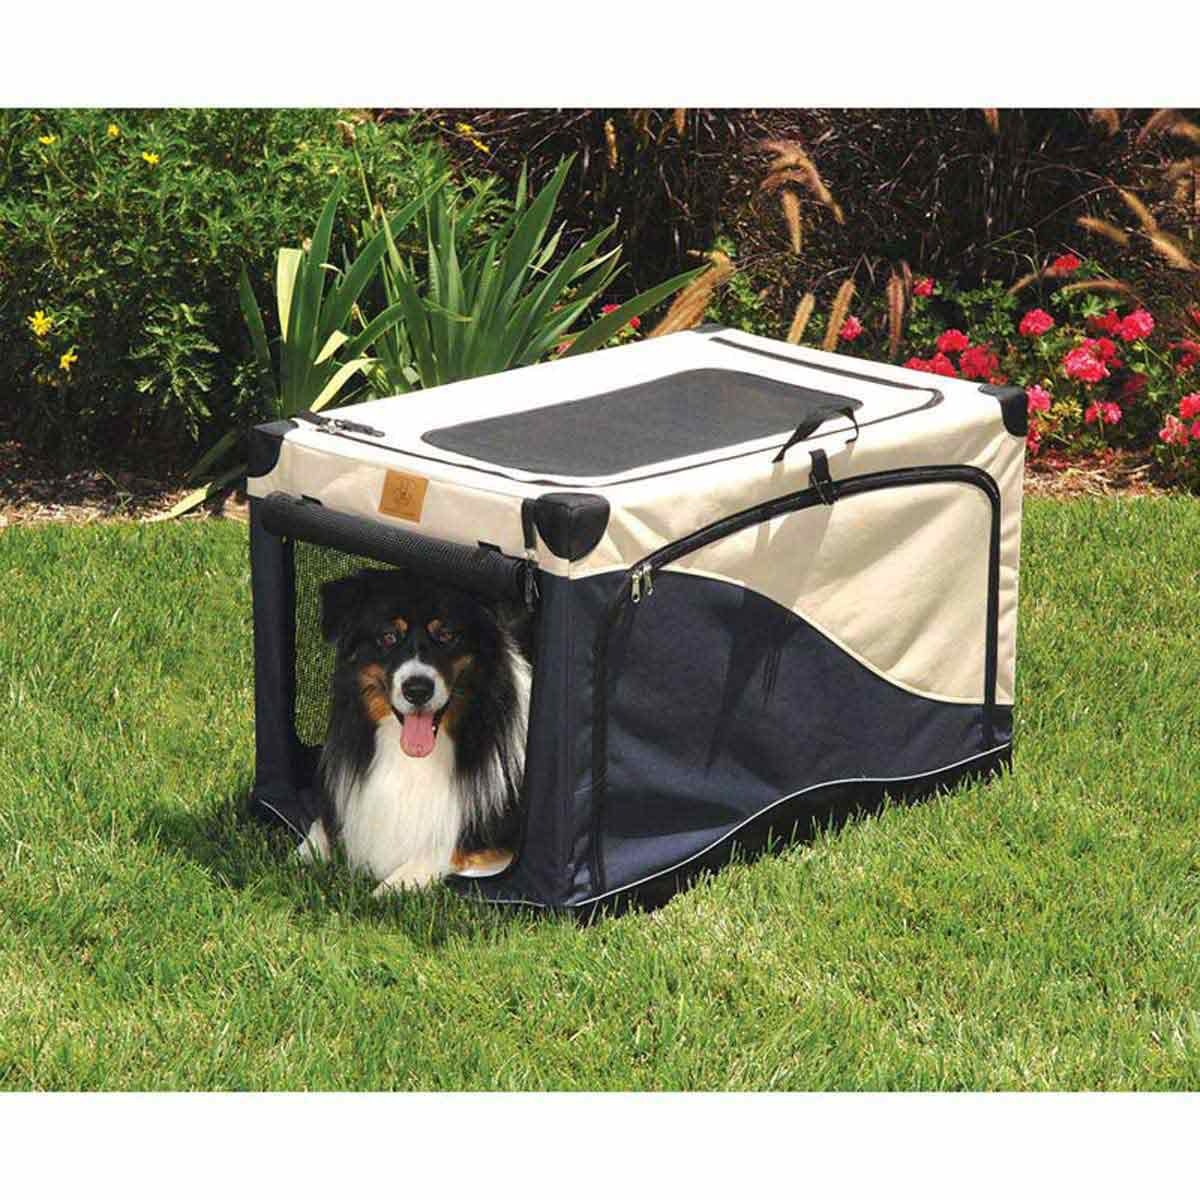 Precision Soft Side Crate for Dogs - 42 inches by 28 inches by 27 inches